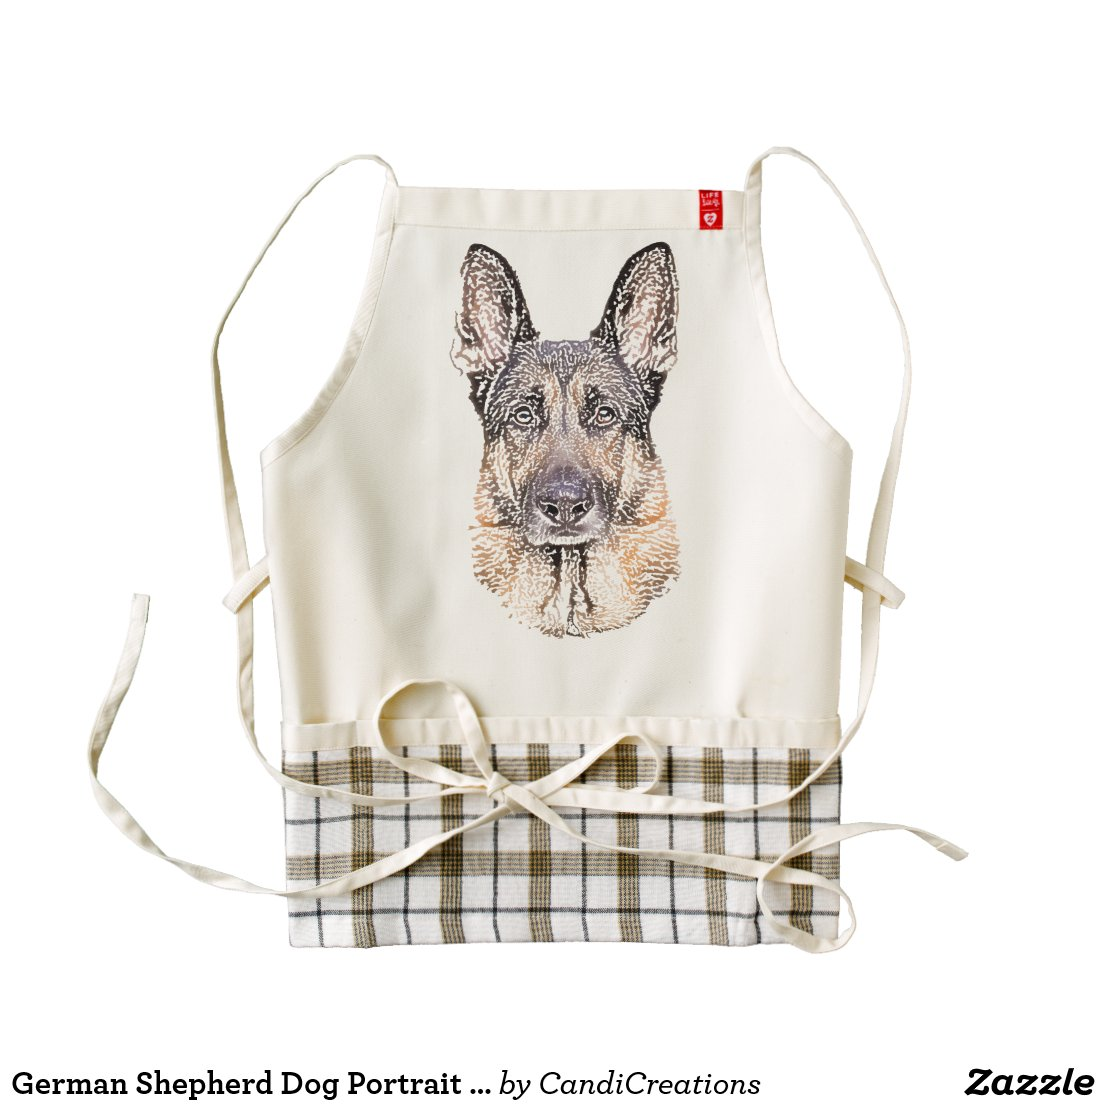 German Shepherd Dog Portrait Sketched Art Zazzle HEART Apron